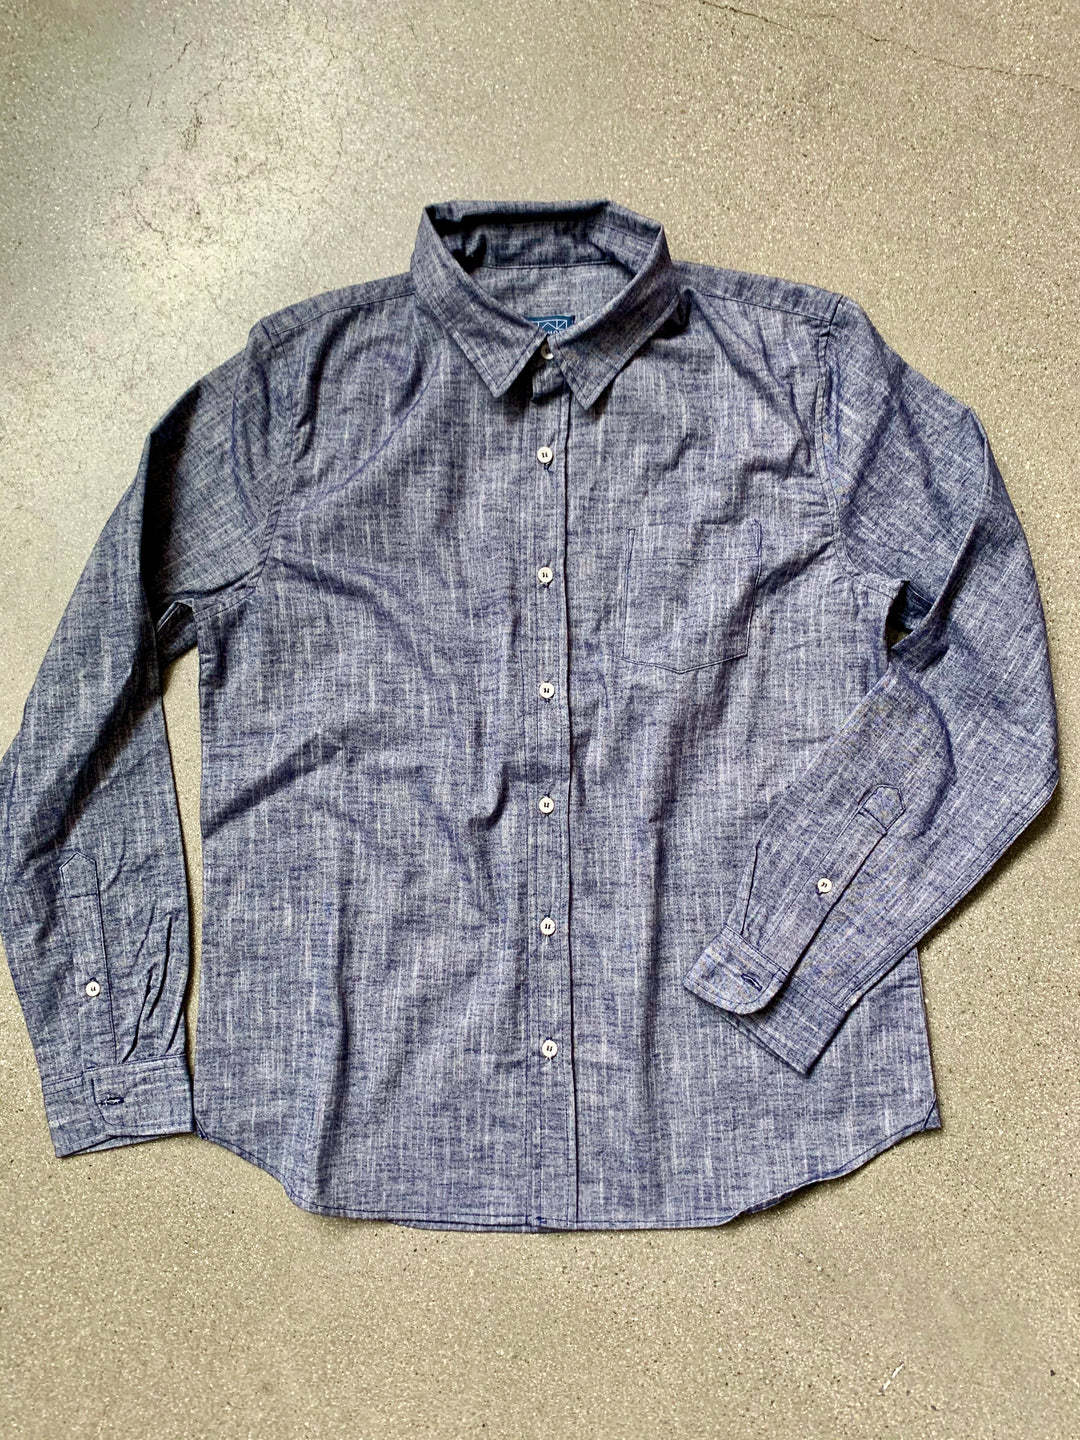 Wittmore Navy Blue Soft Chambray Button Down Shirt